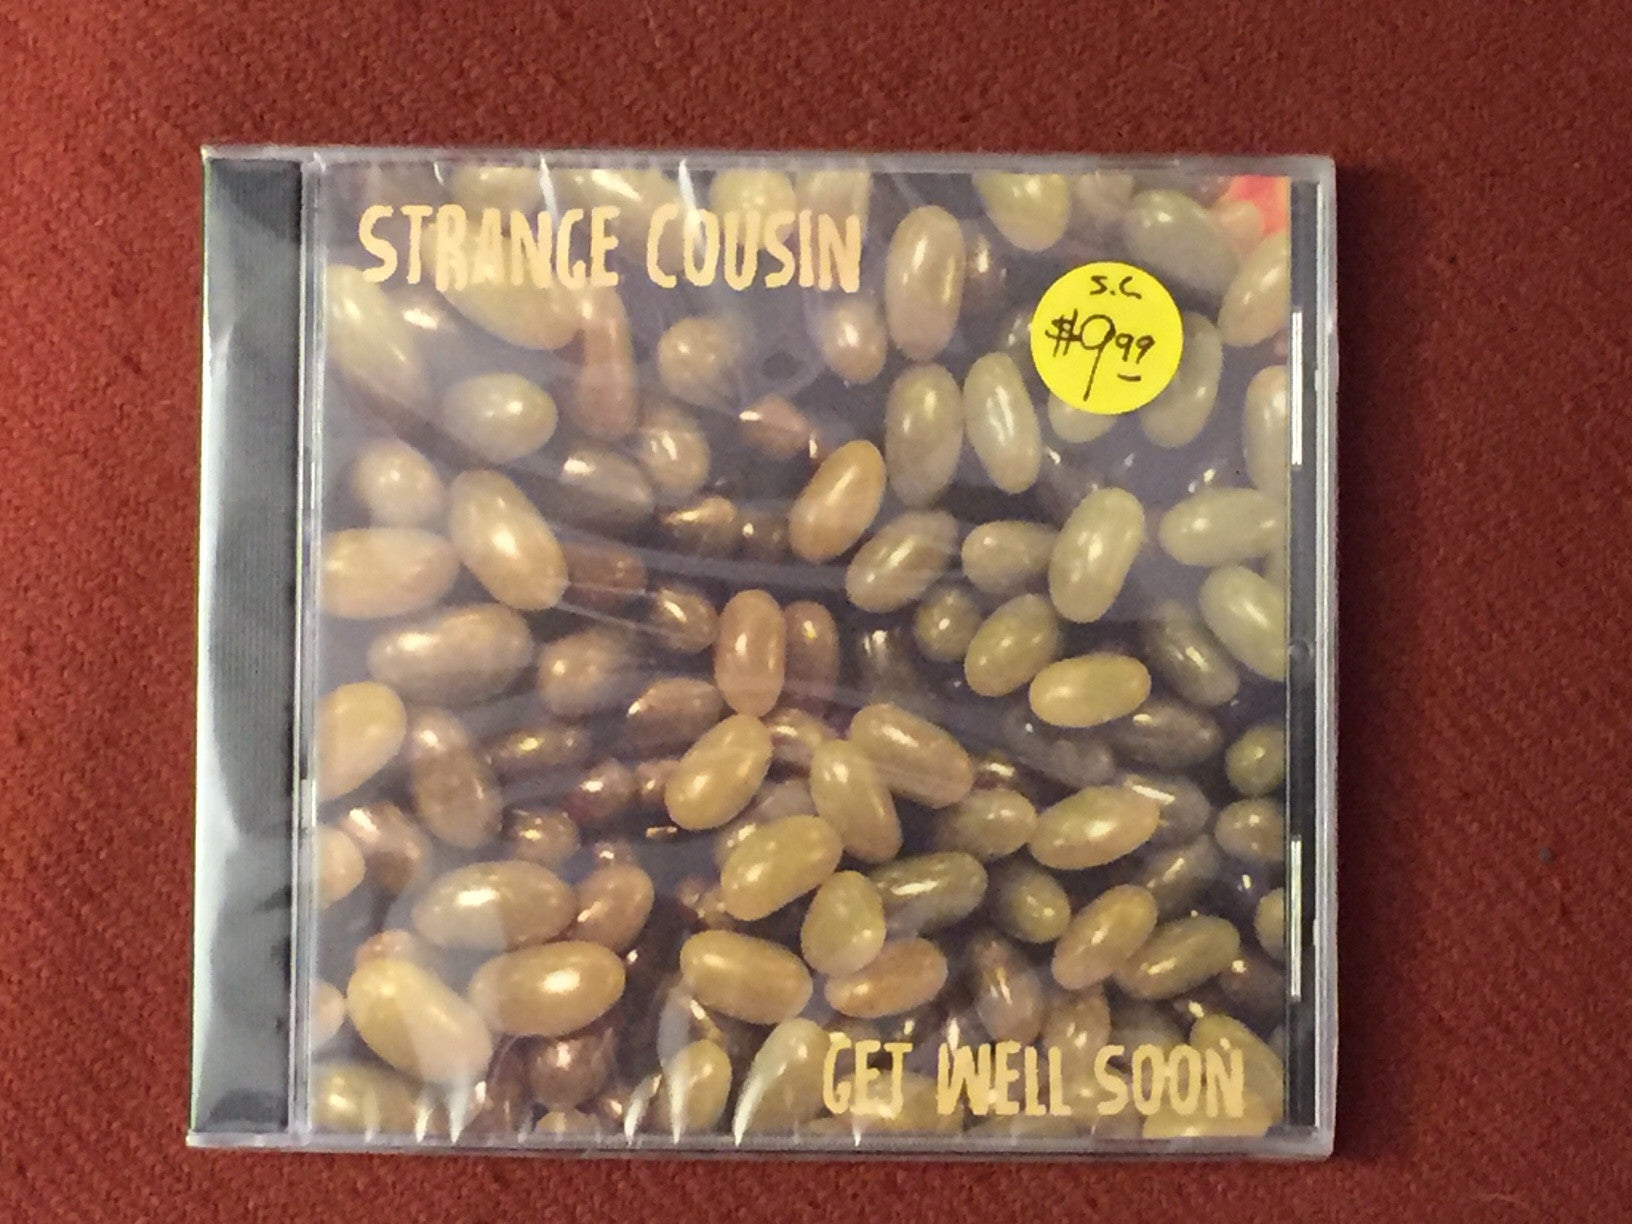 Strange Cousin - Get Well Soon